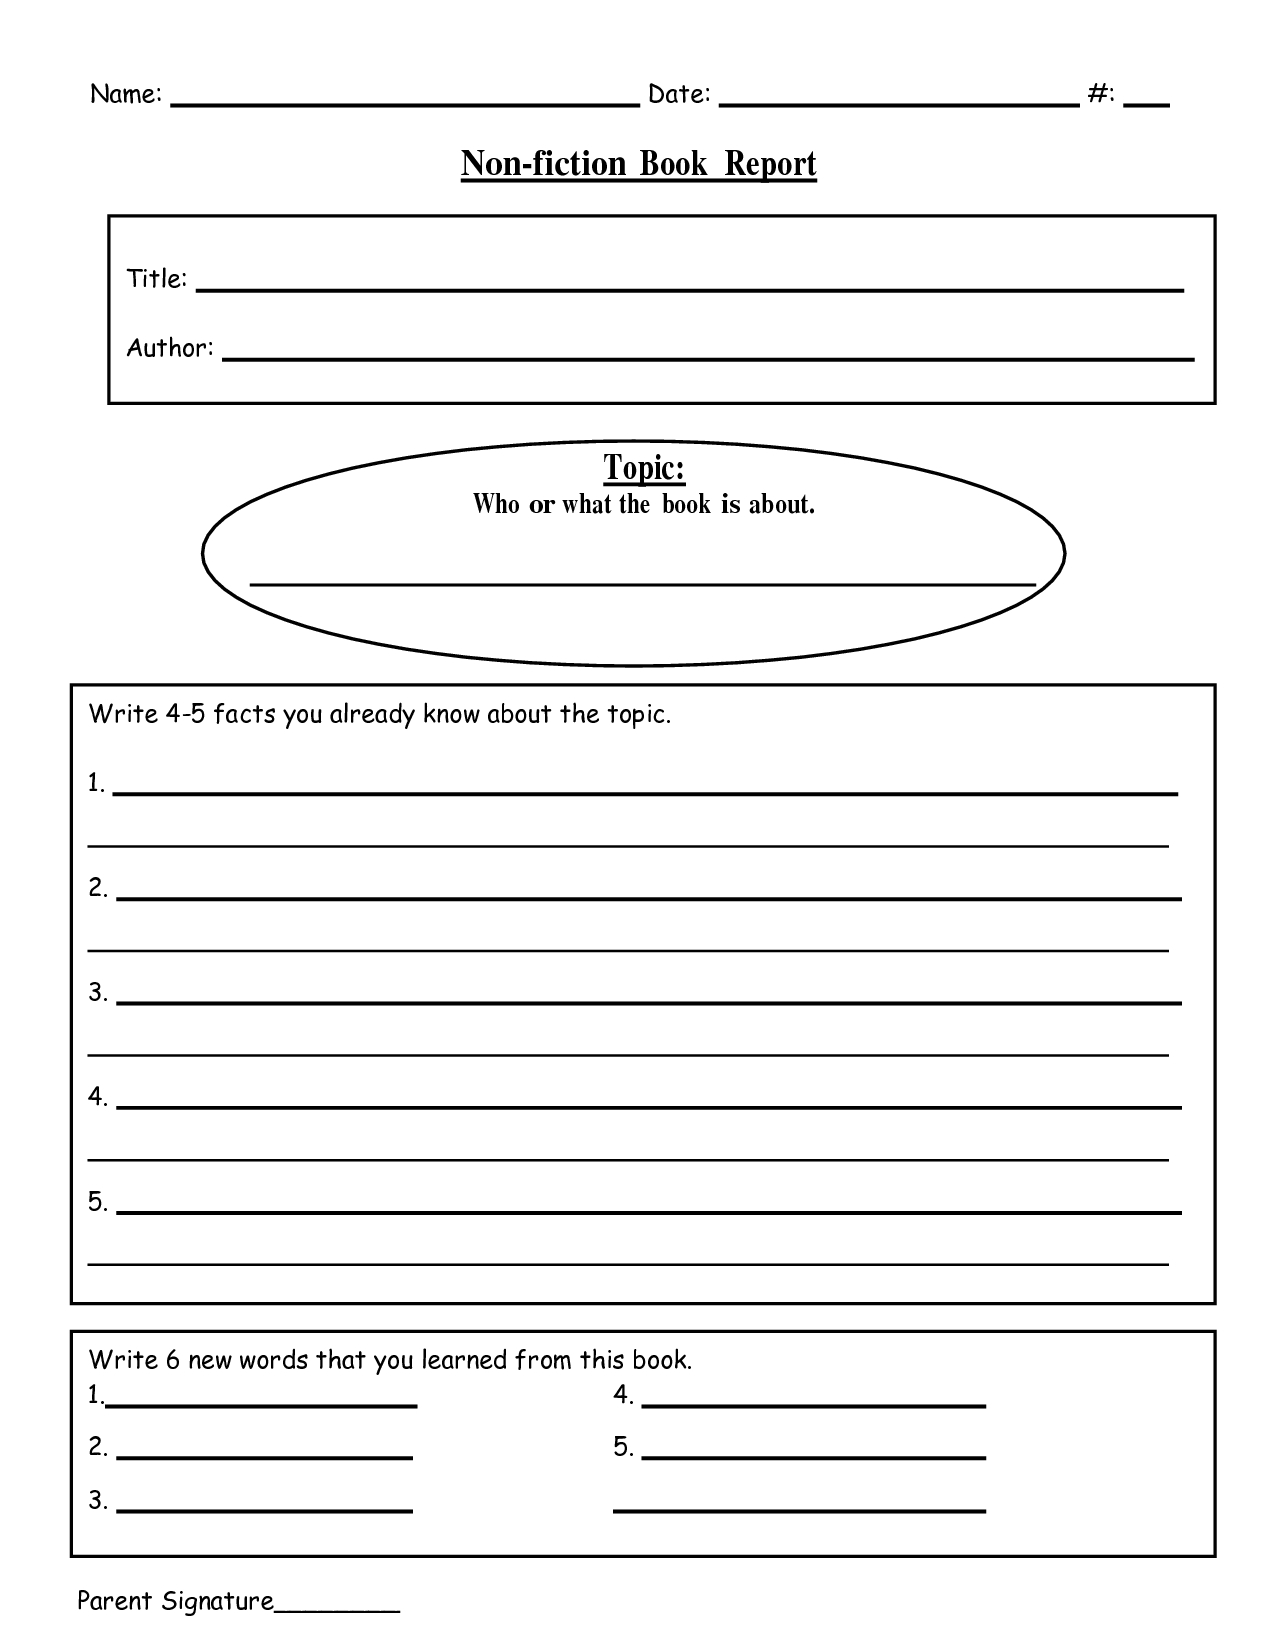 Free Printable Book Report Templates | Non-Fiction Book Report.doc - Book Report Template Free Printable